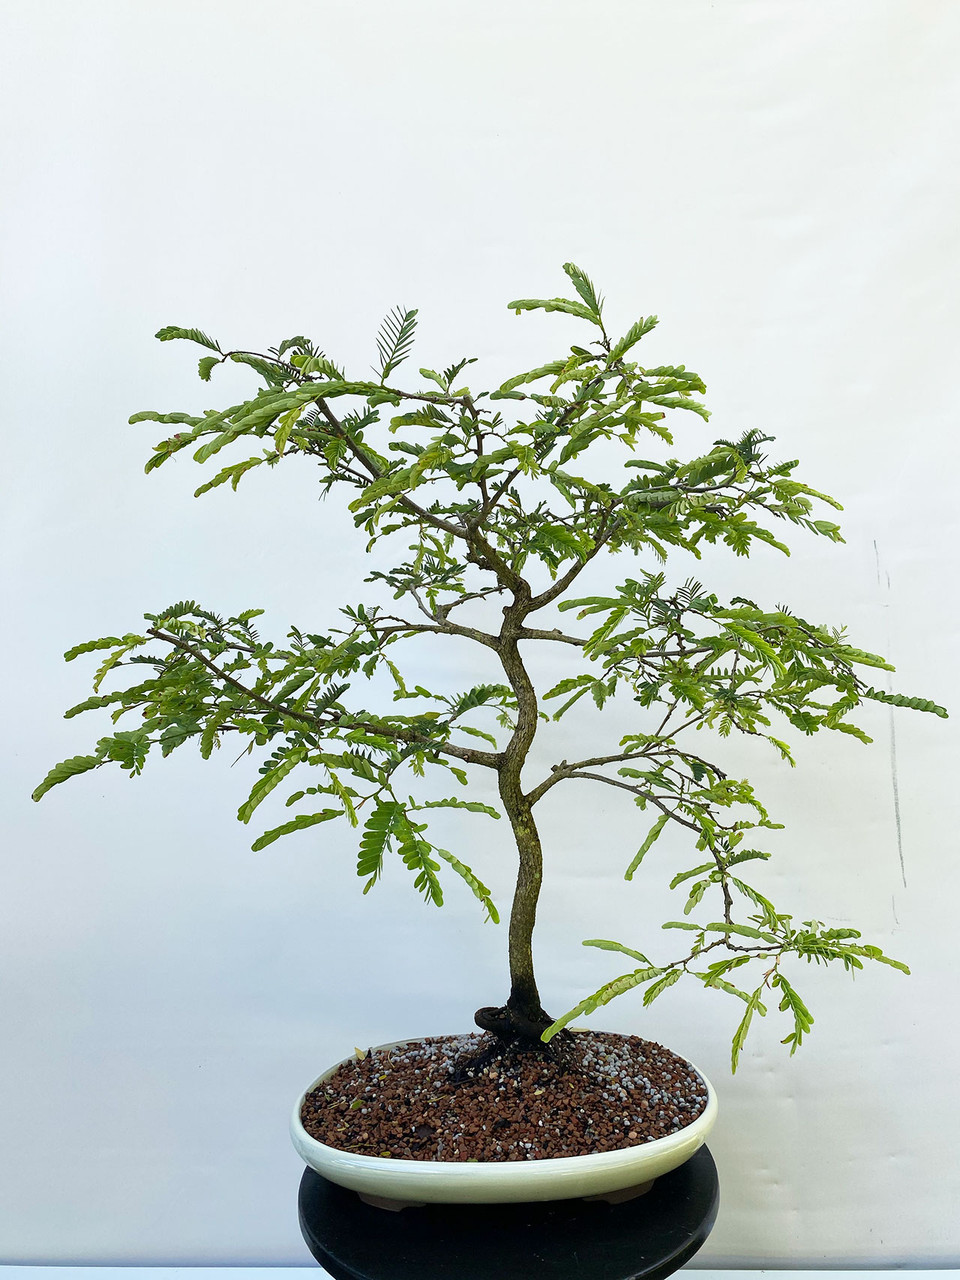 Tamarind Bonsai Tree Bonsai Outlet Tweb779